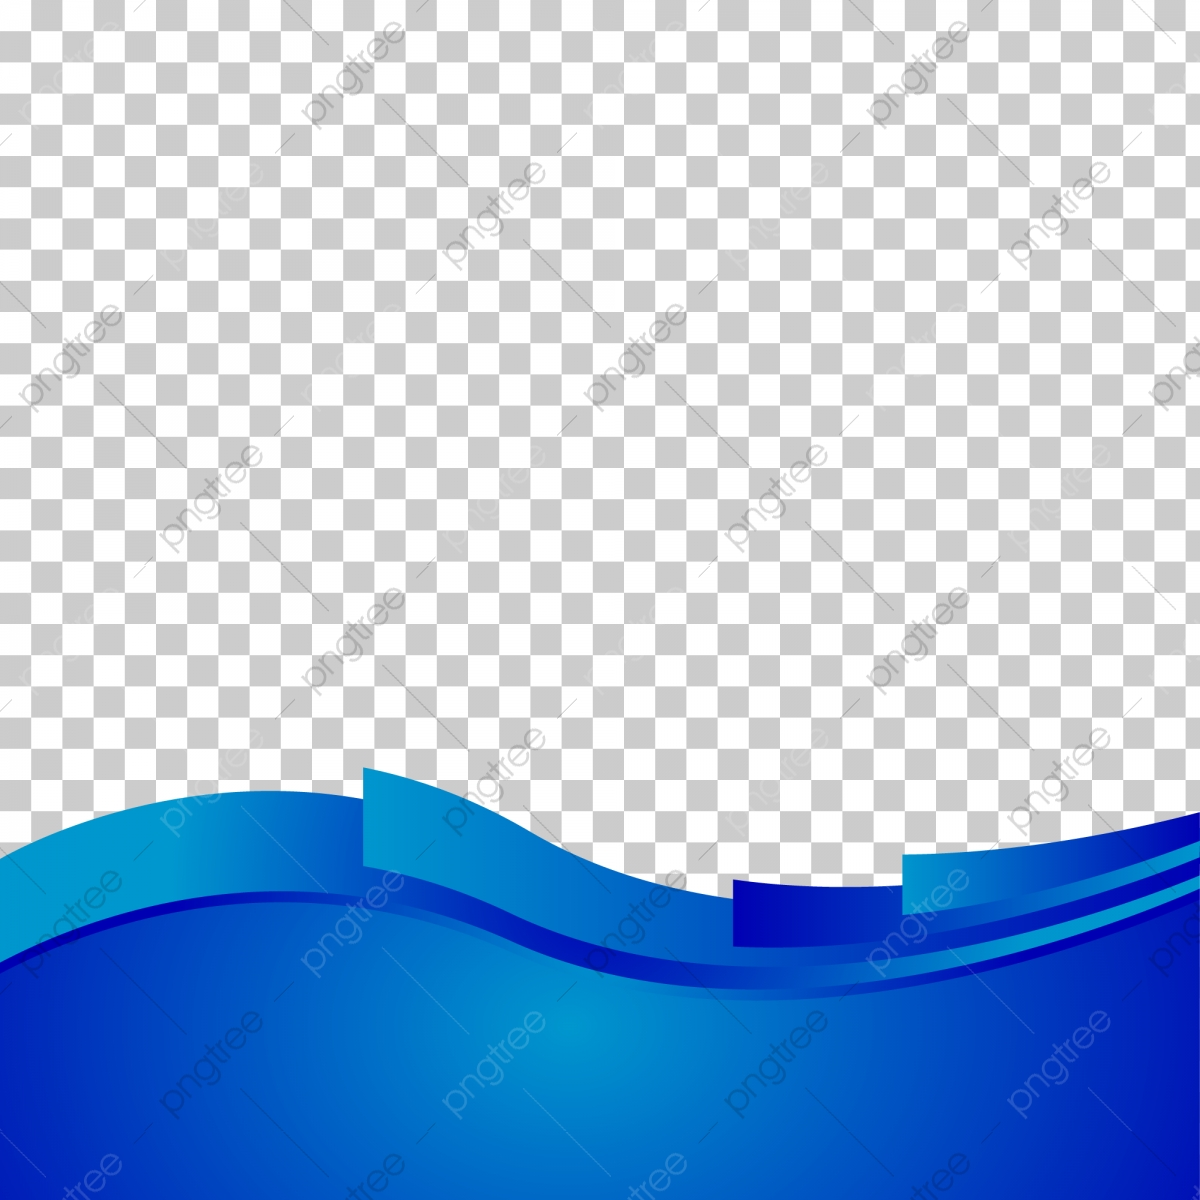 Blue Background Png, Vector, PSD, And Clipart With Transparent Background  For Free Download | Pngtree